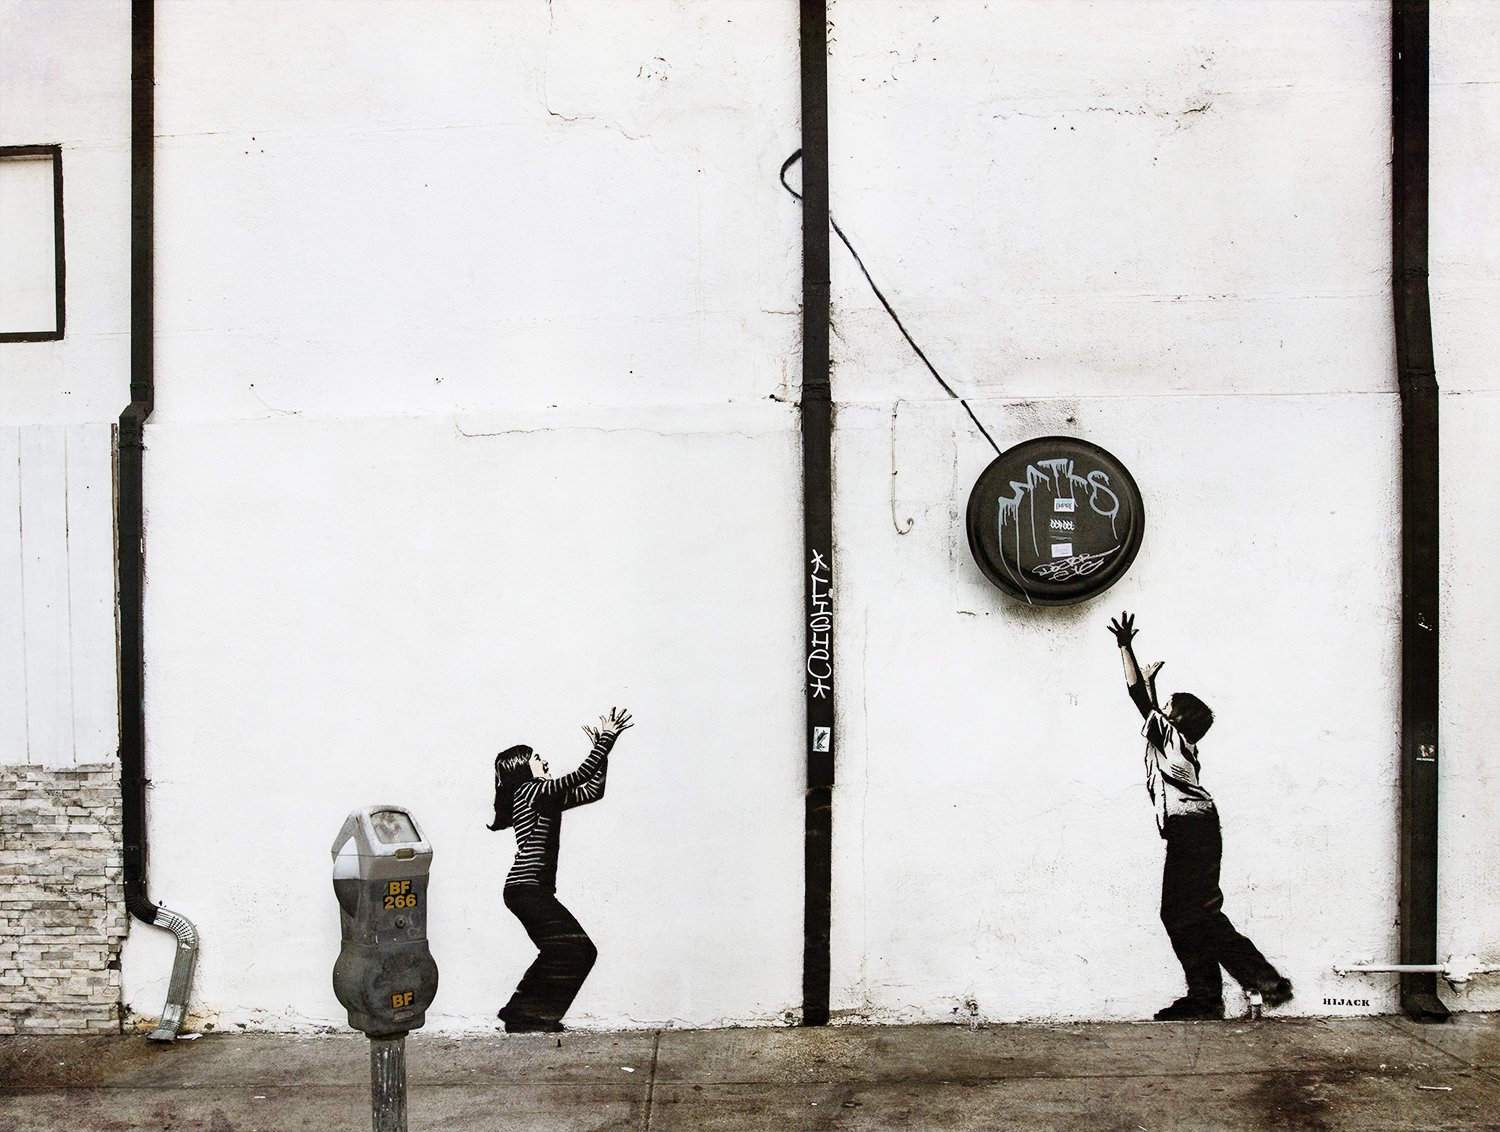 tether ball, street art, wall art, urban art, life, kids playing